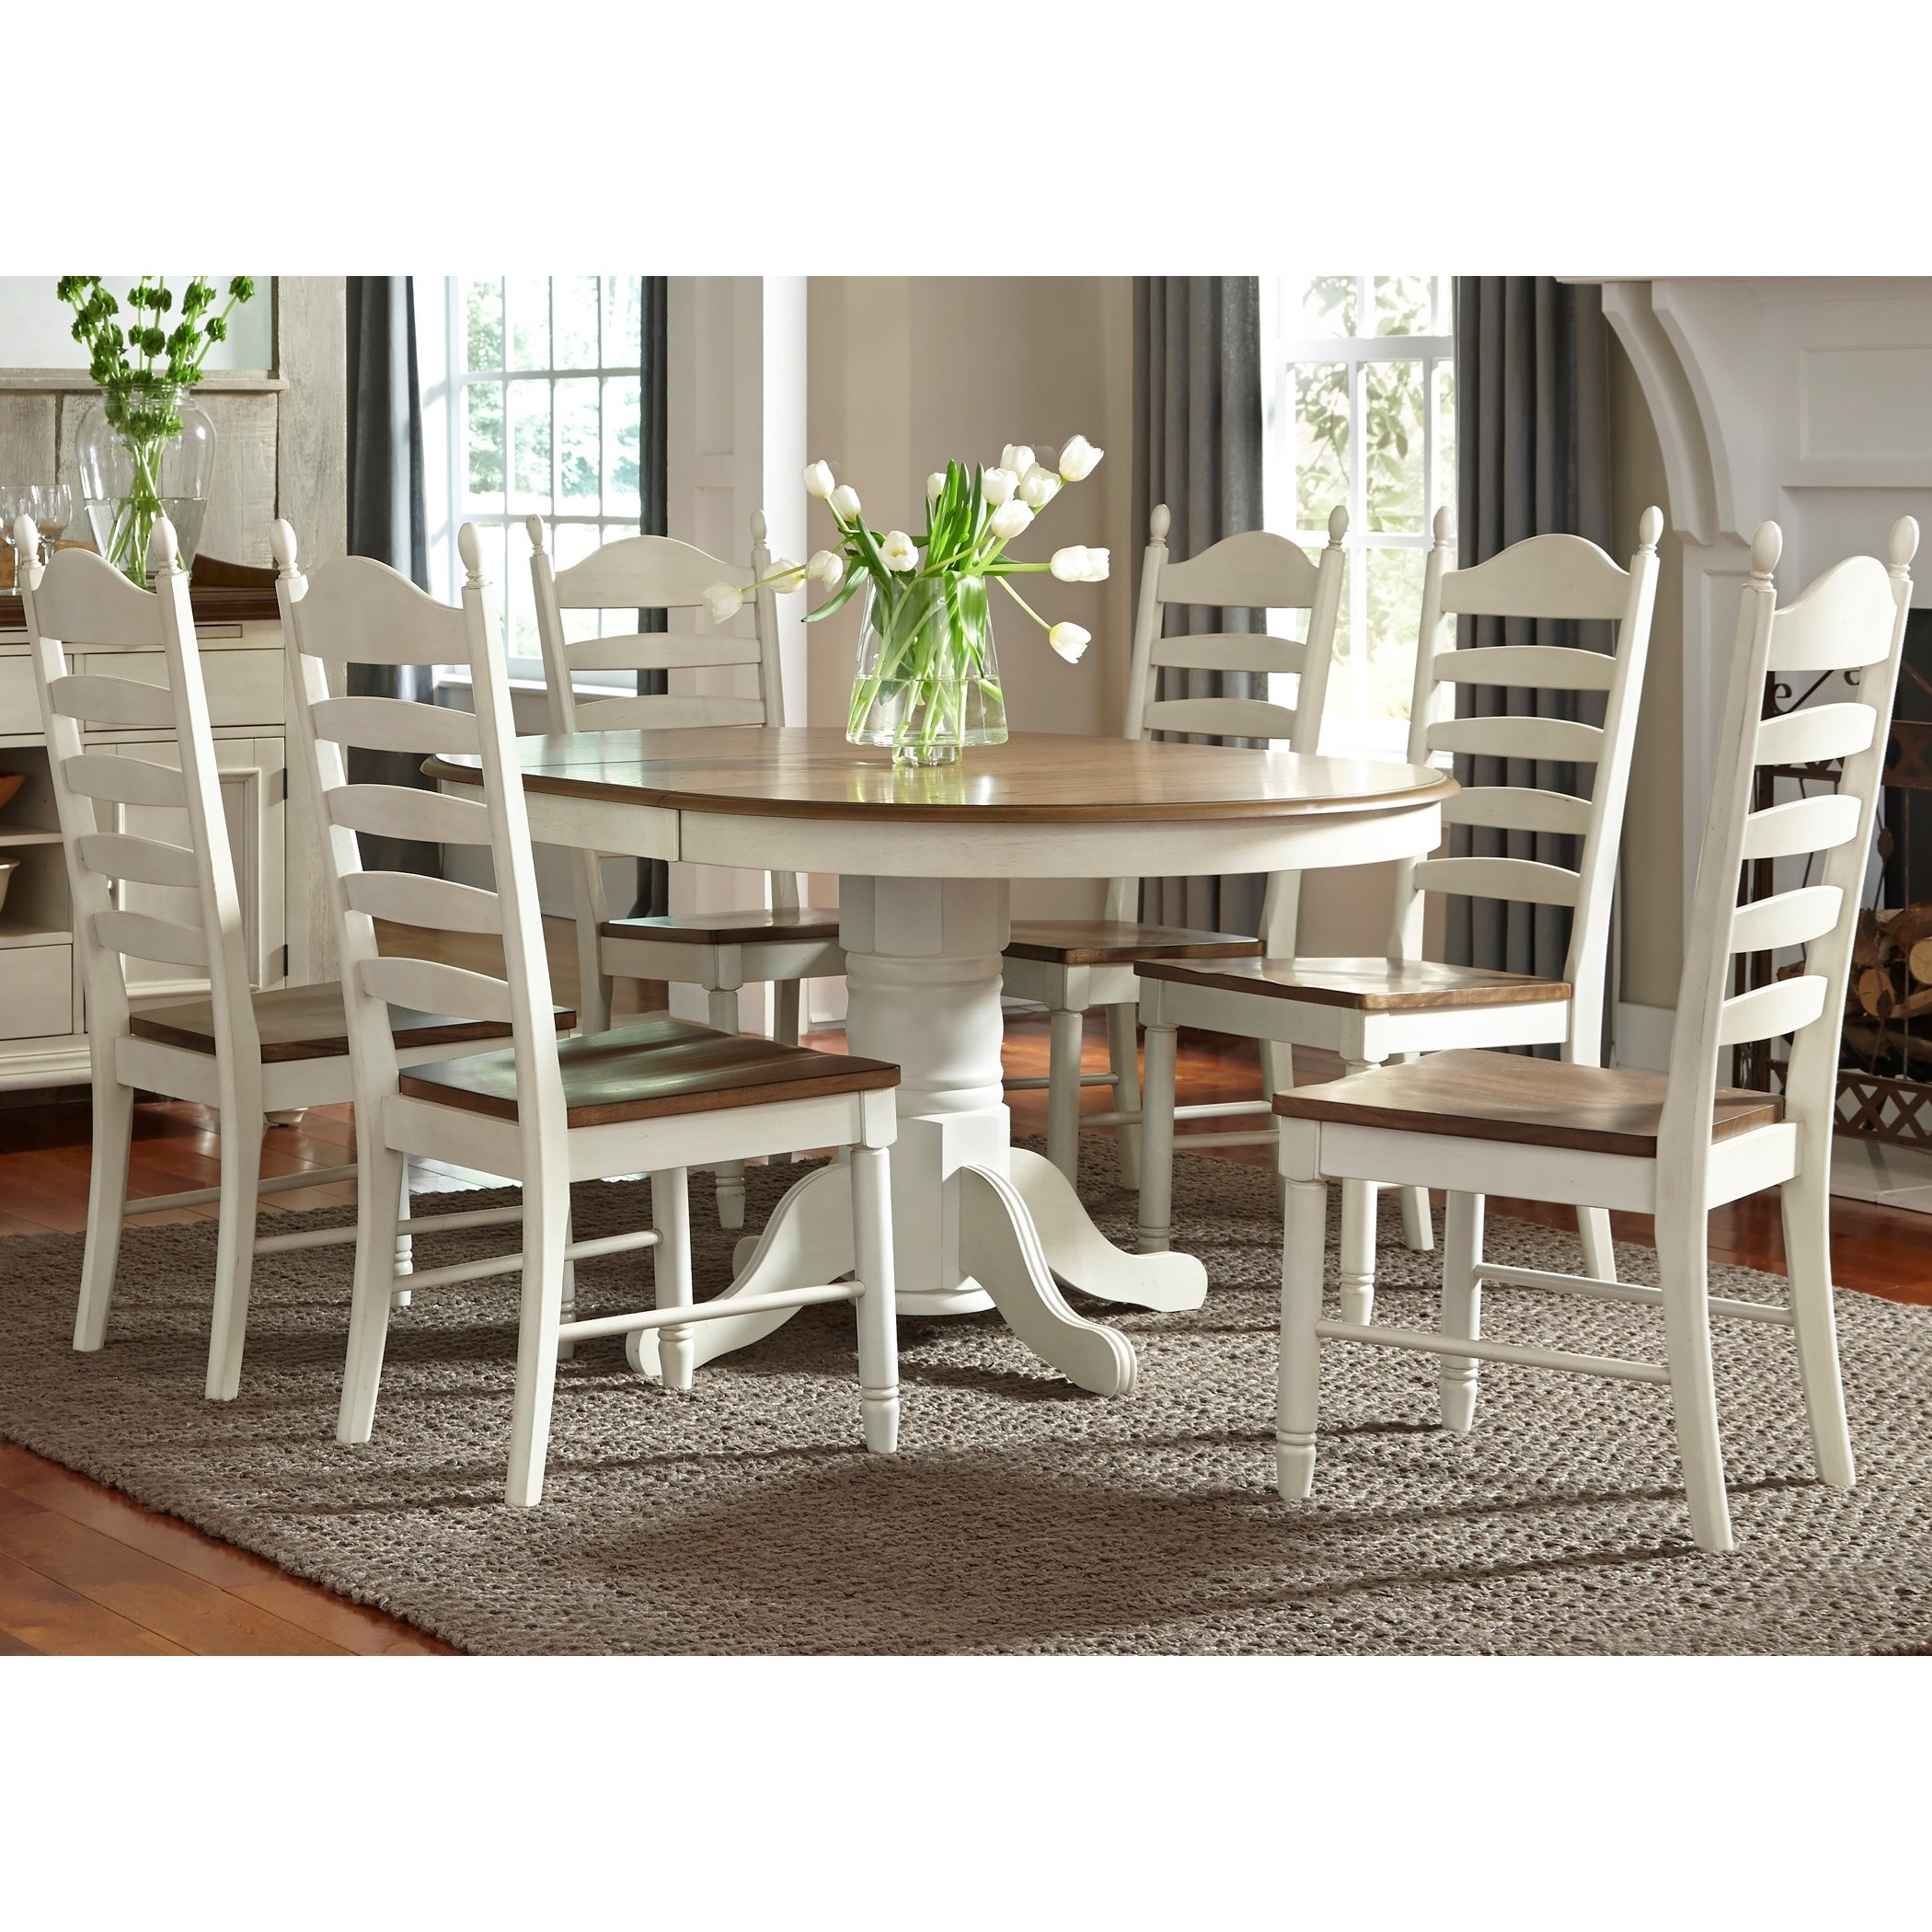 Liberty Furniture Springfield Dining 7 Piece Pedestal Table & Chair Set - Item Number: 278-CD-7PDS